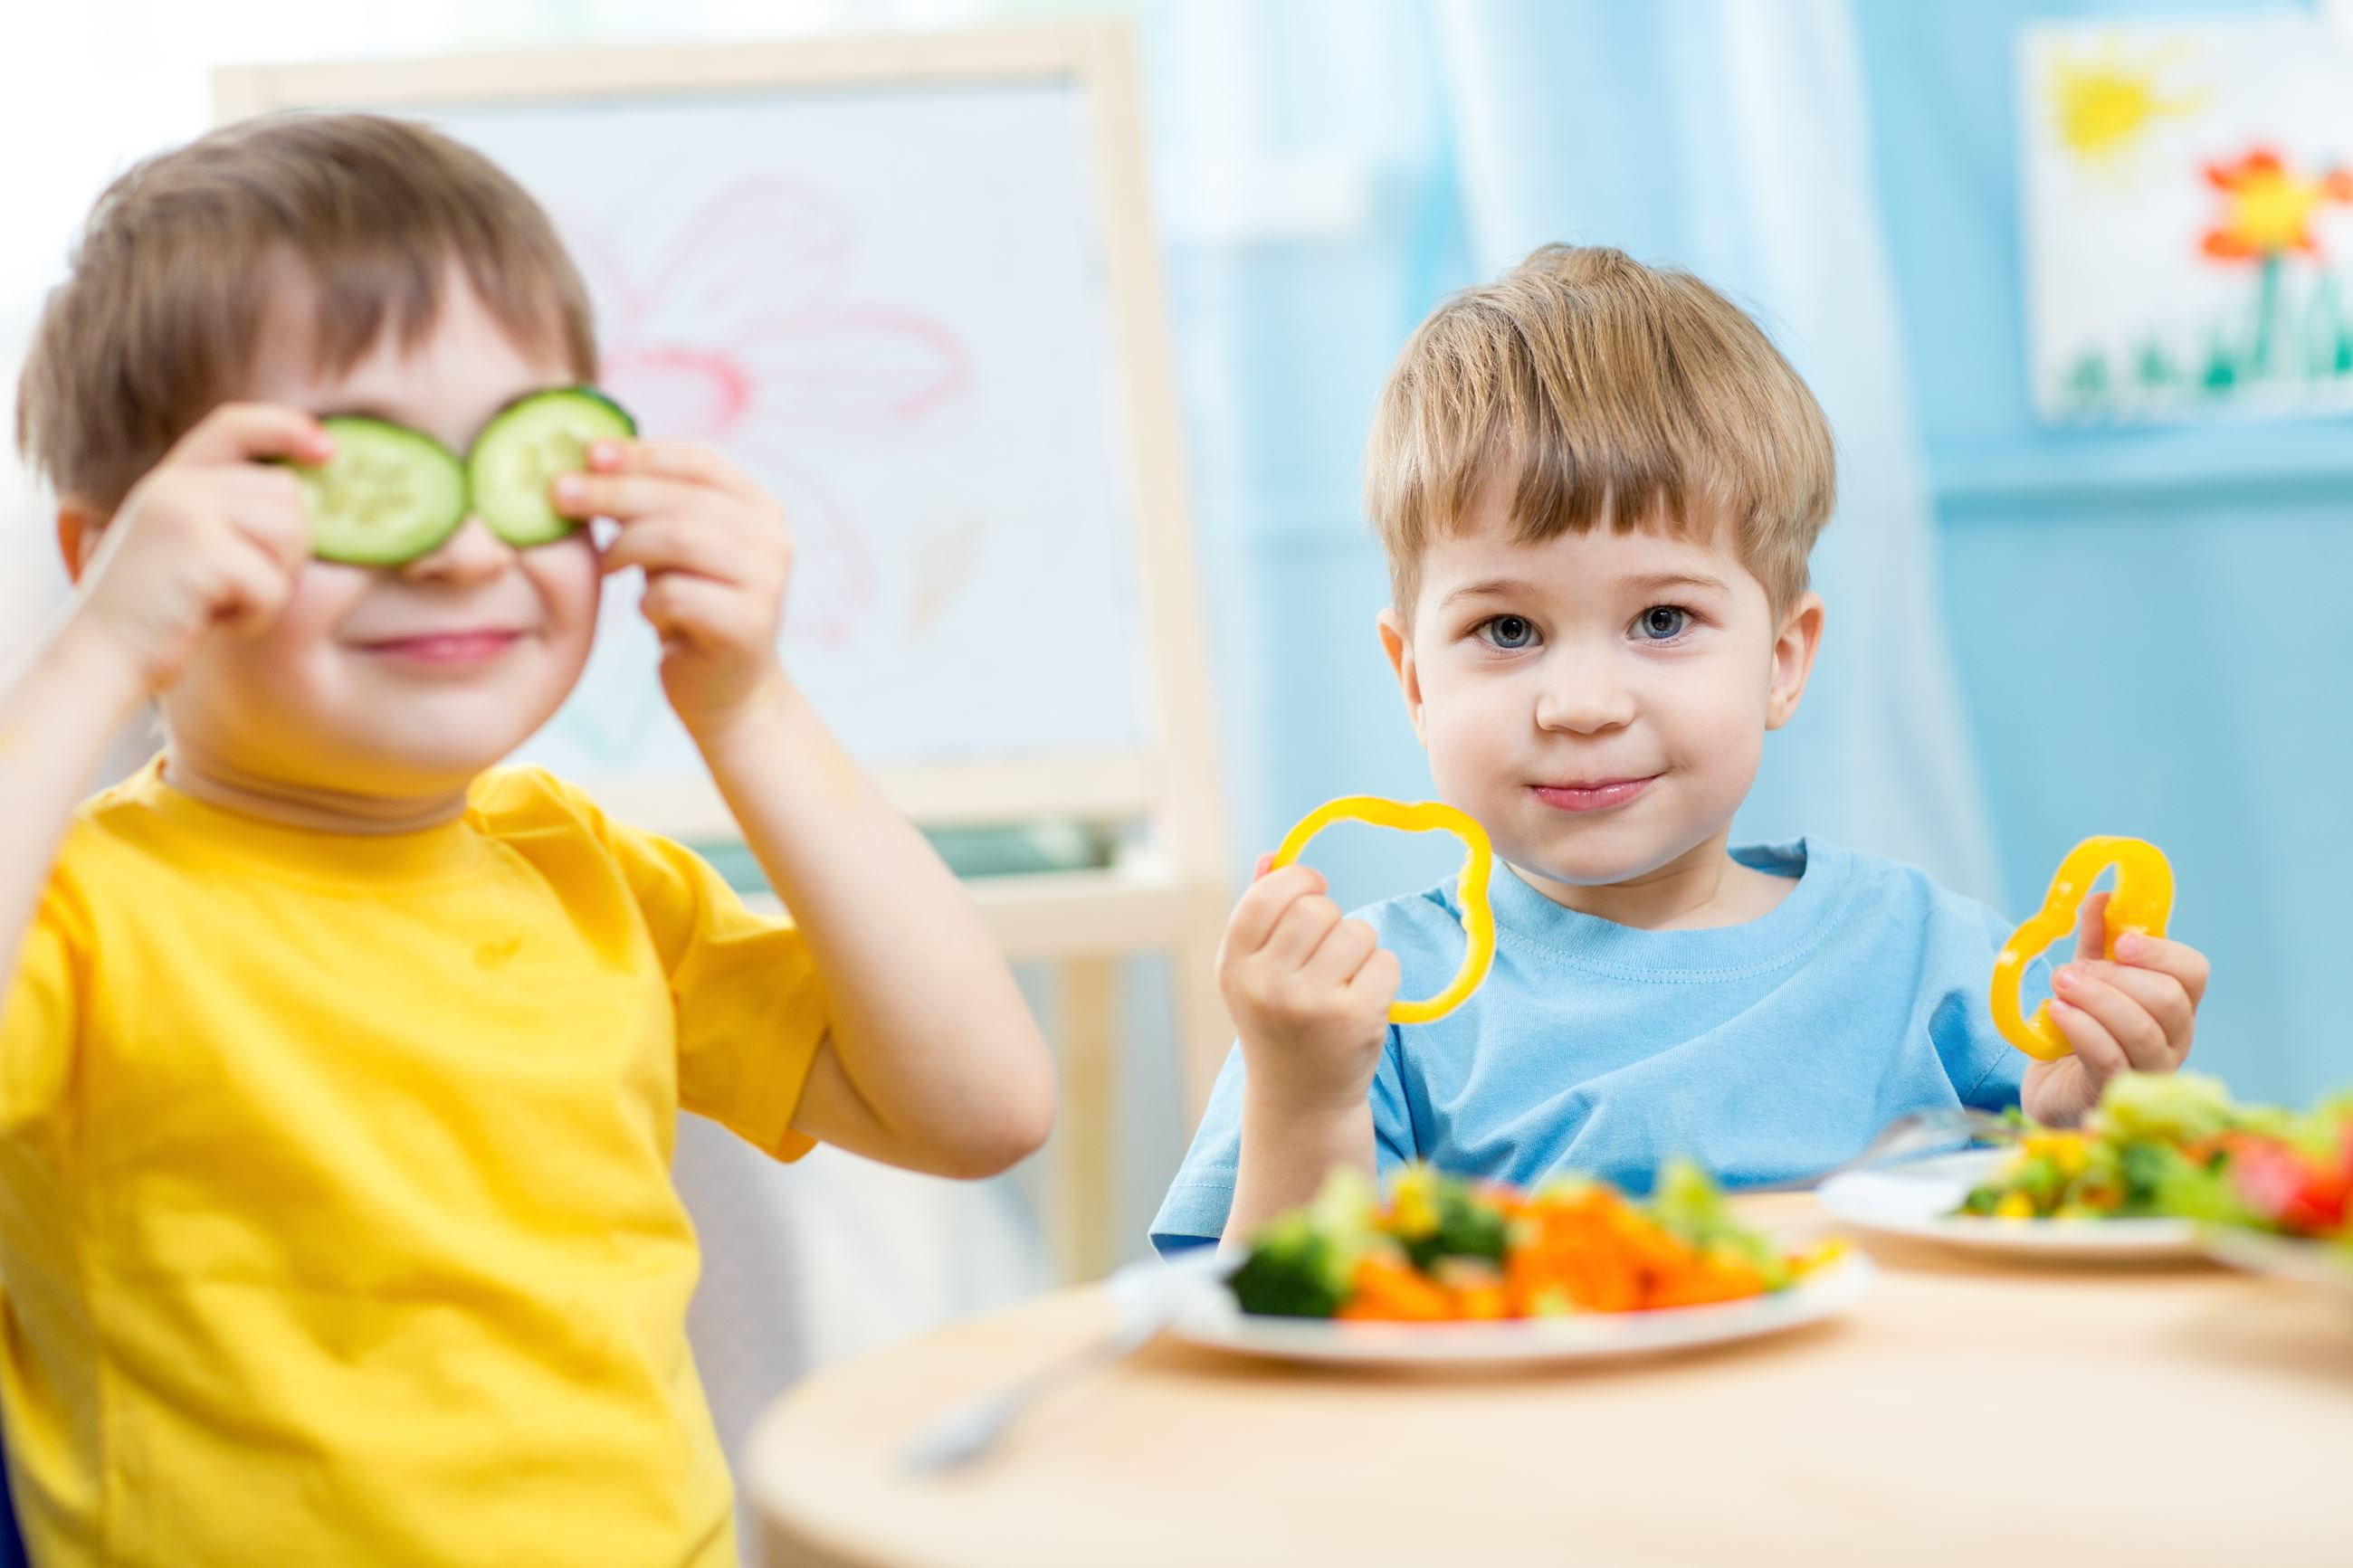 young boy in a yellow shirt plays with his food by putting cucumbers on his eyes; another boy in a b